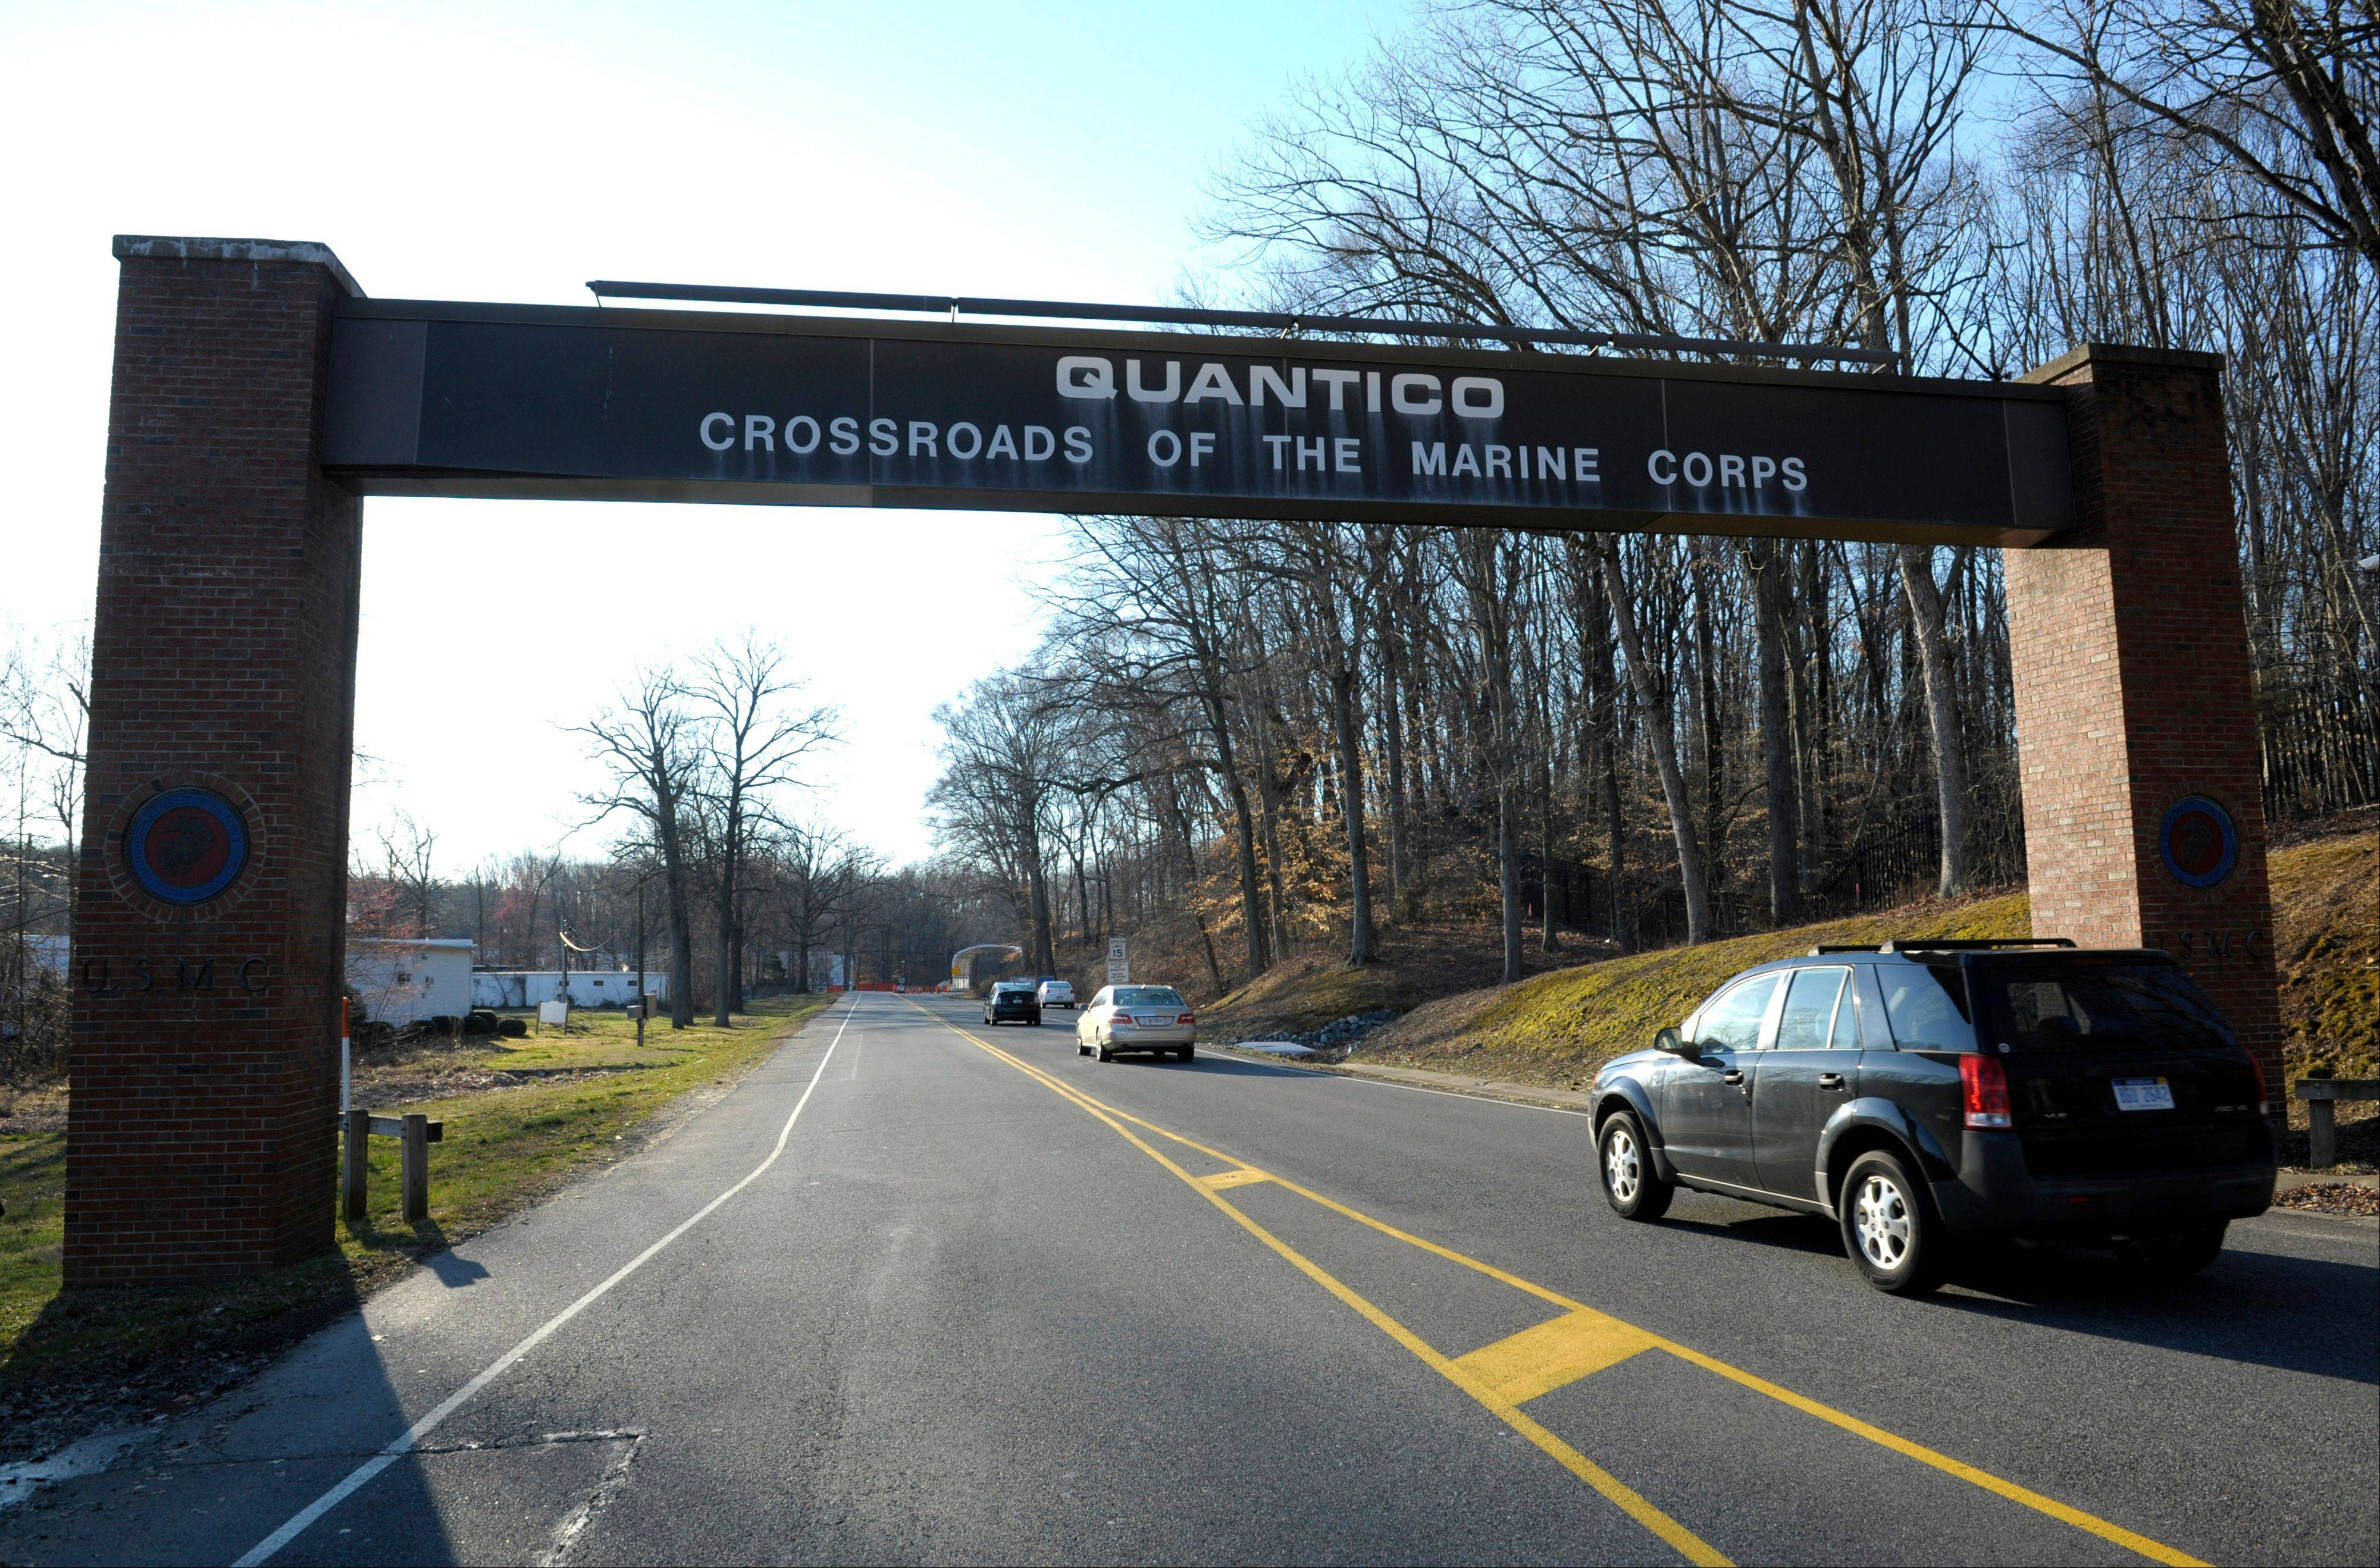 Cars pass under a sign at the entrance to the main gate at Quantico Marine Corps Base in Quantico, Va., Friday, March 22, 2013. A Marine killed a male and female colleague in a shooting at a base in northern Virginia before killing himself, officials said early Friday.